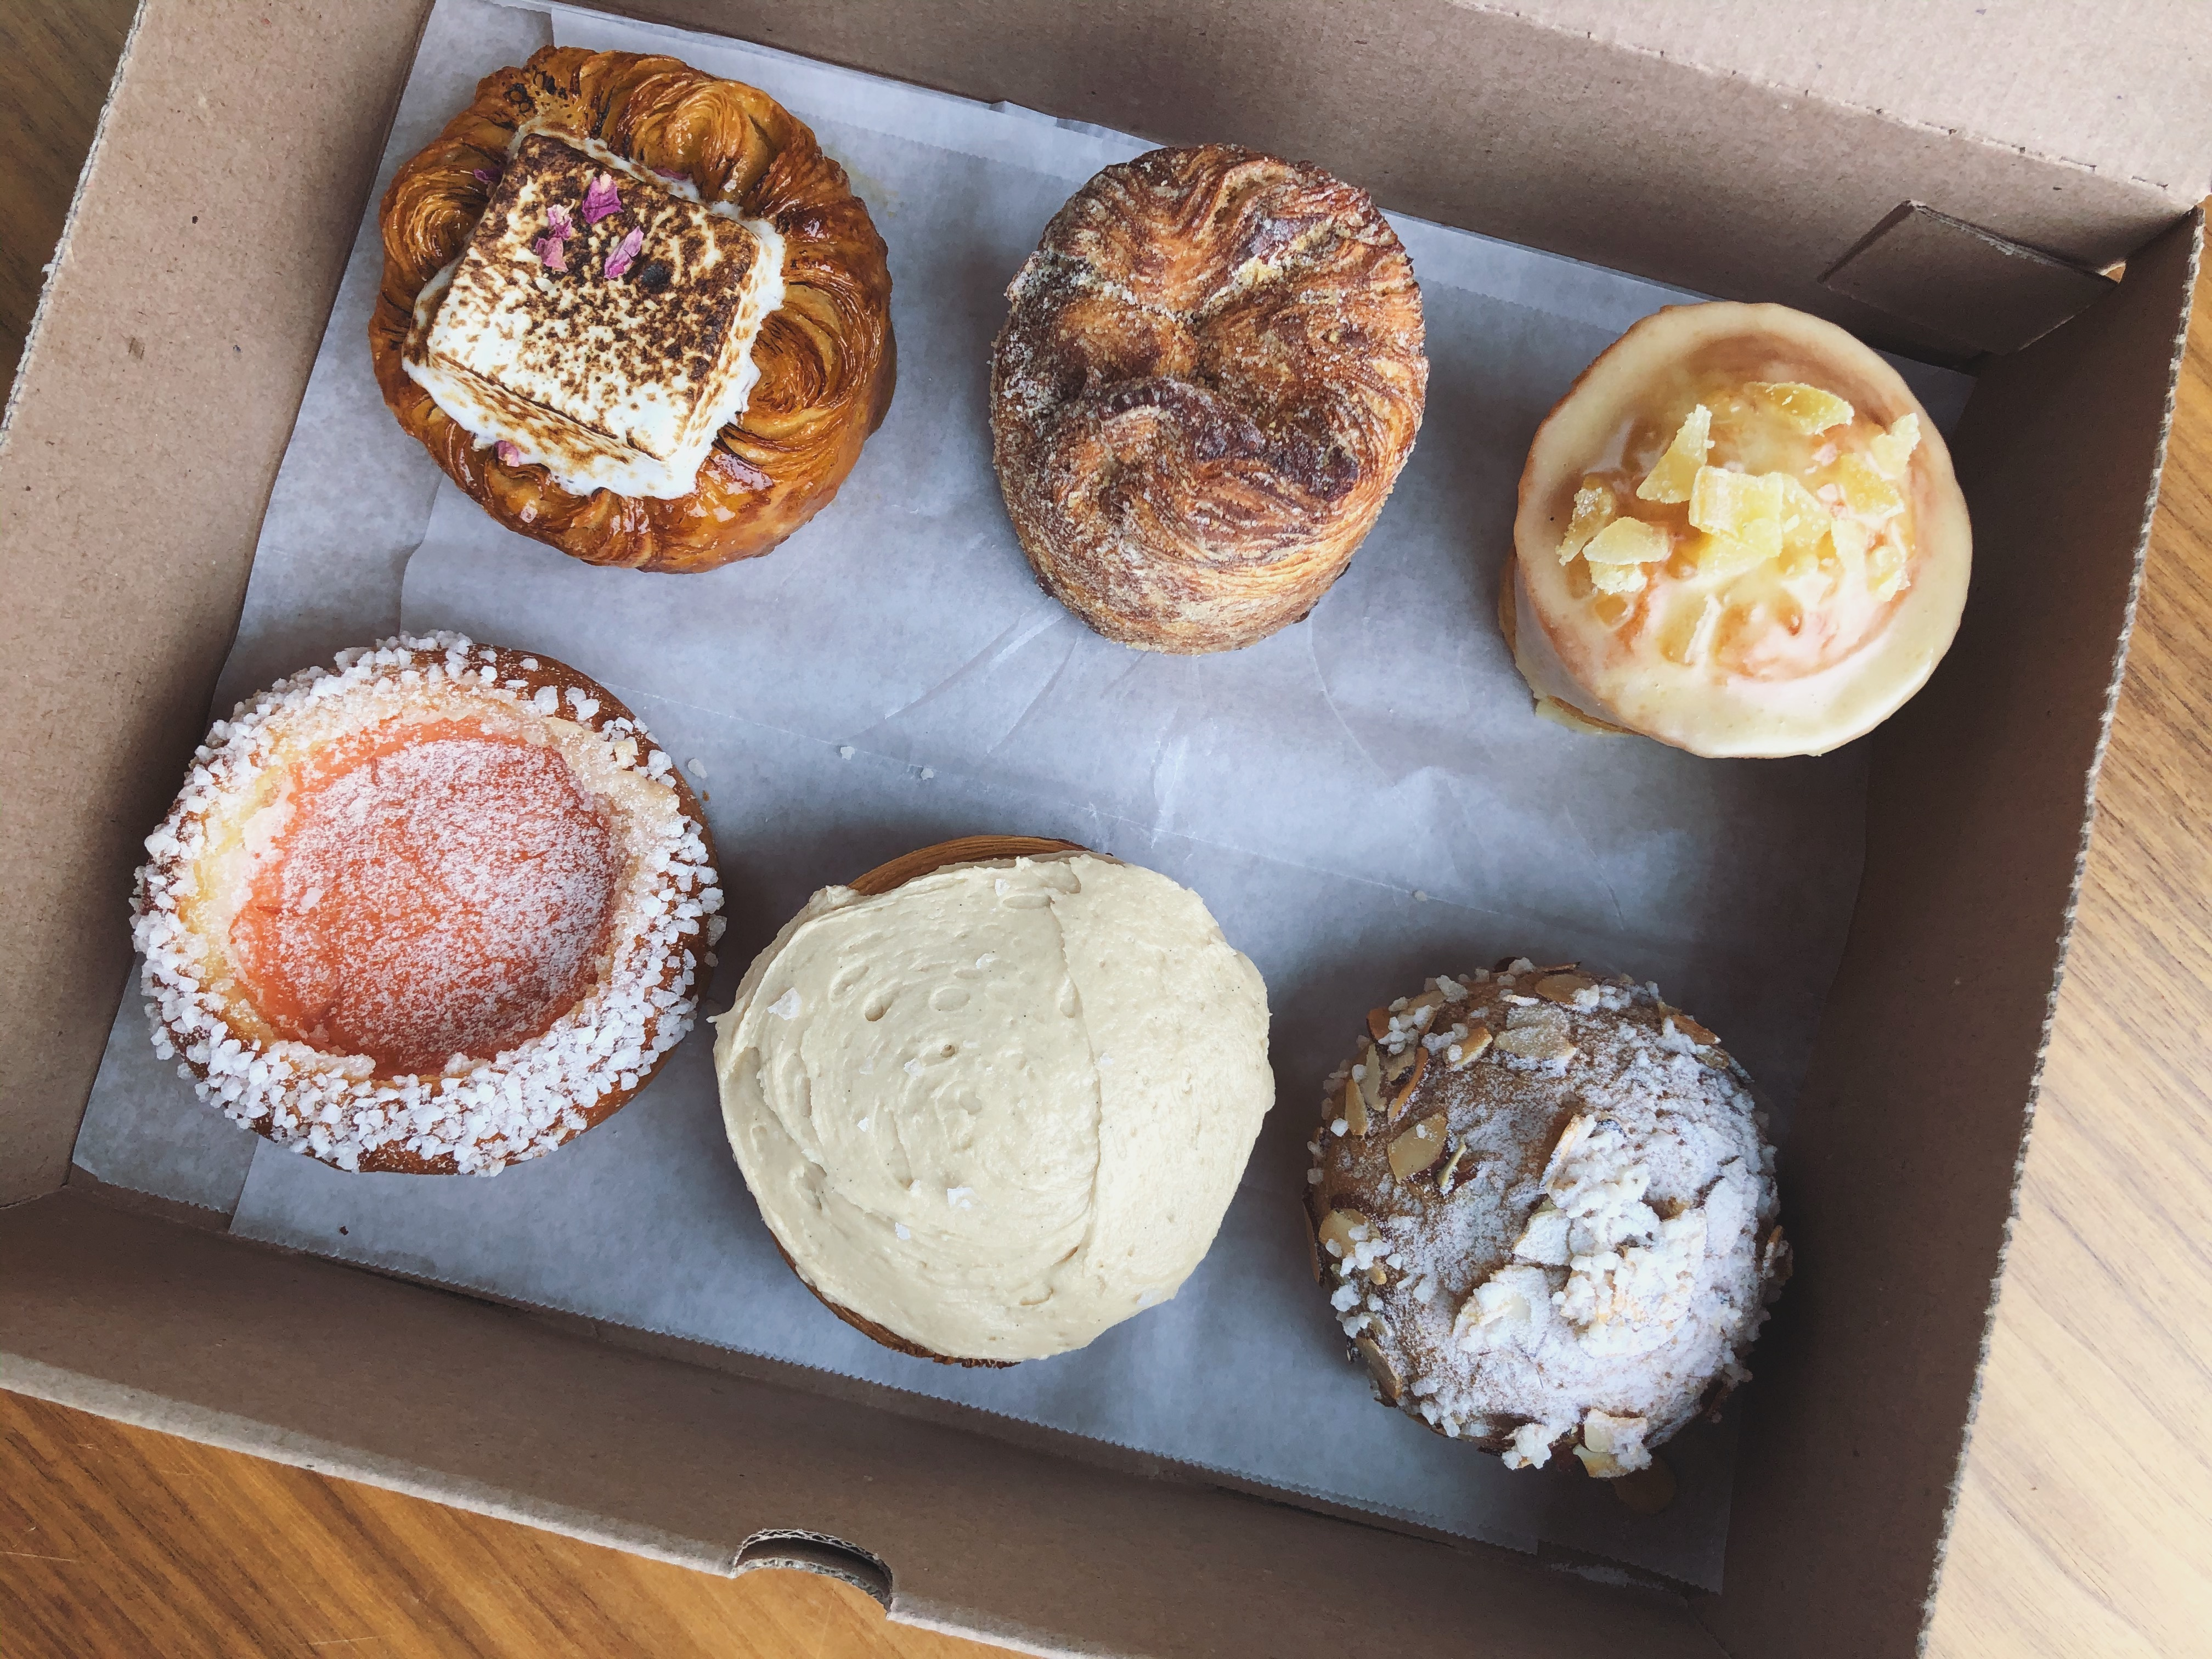 Six different pastries are lined up on wax paper in a cardboard box, including a cinnamon roll, a muffin, and more